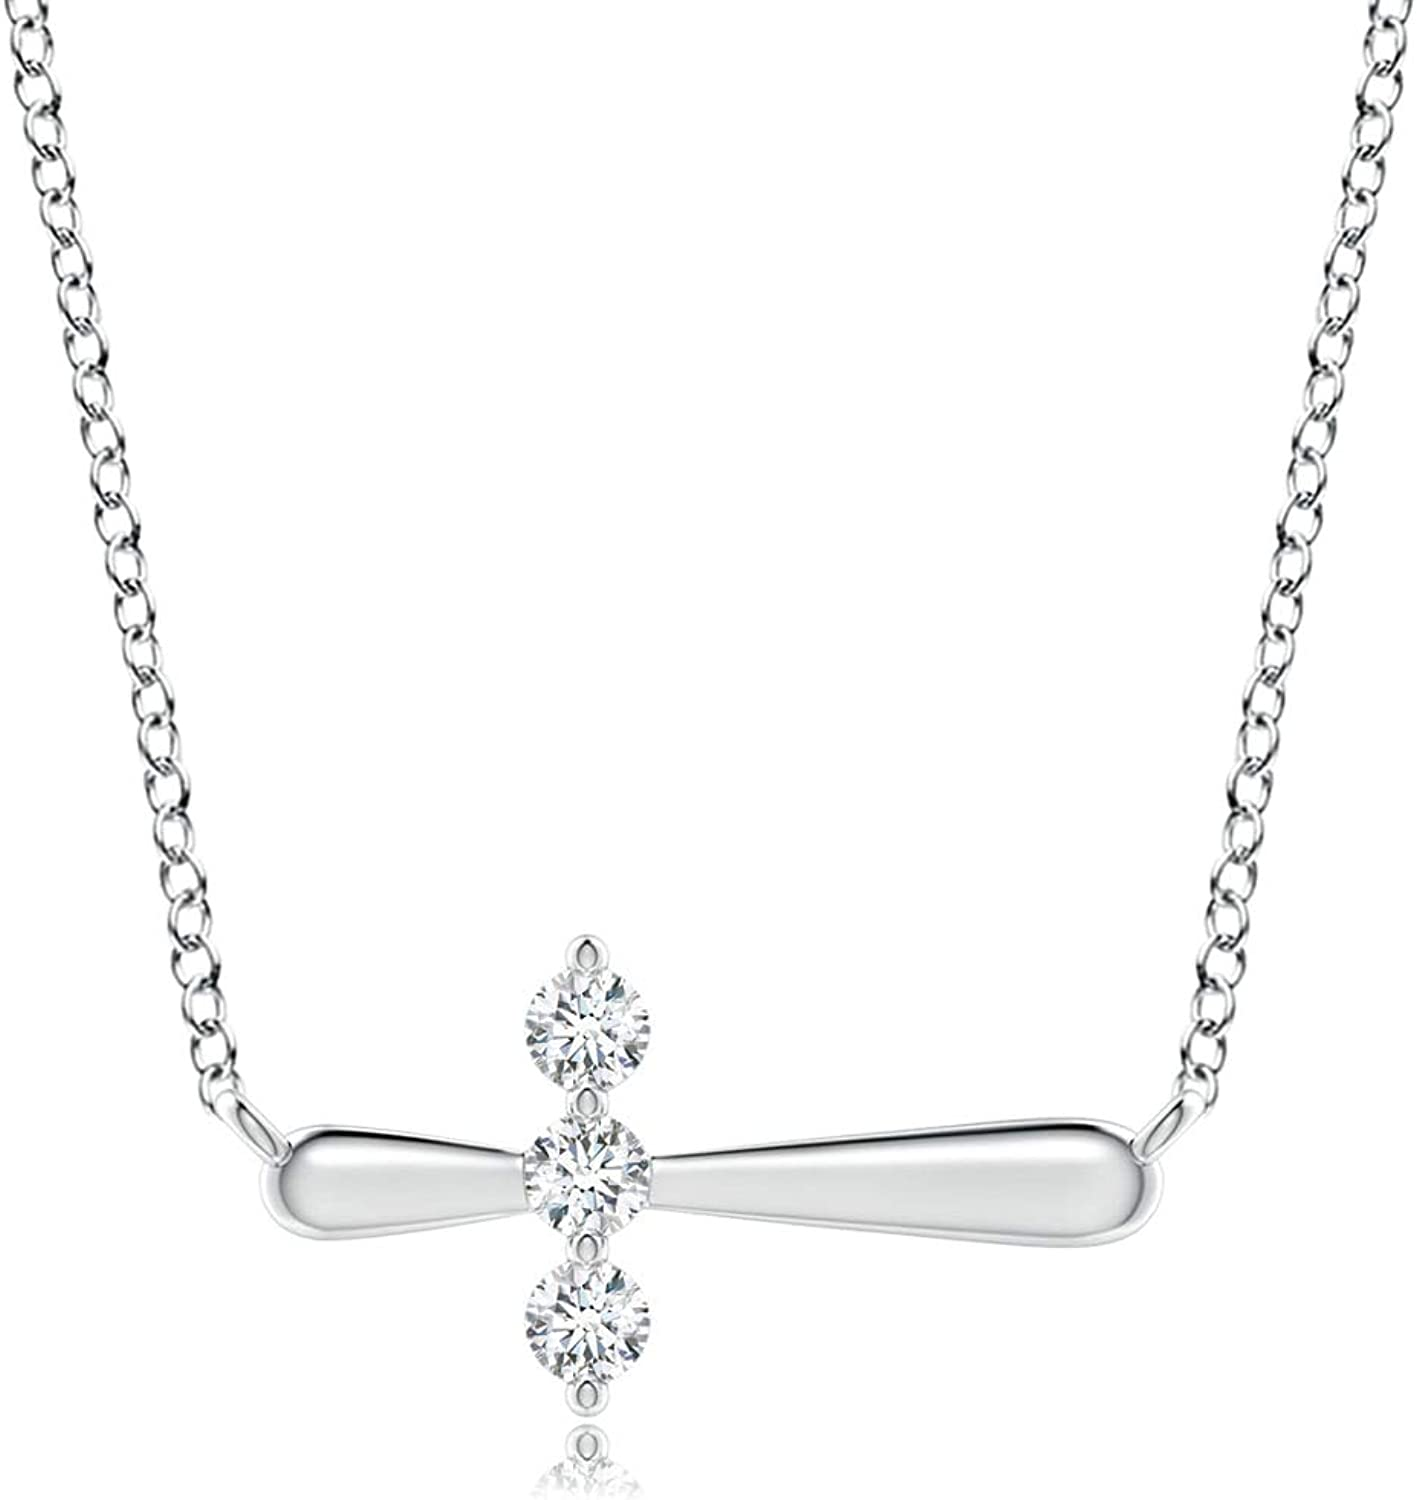 Diamond Sideways 35% OFF Manufacturer direct delivery Cross Necklace in White 2mm 14K Gold